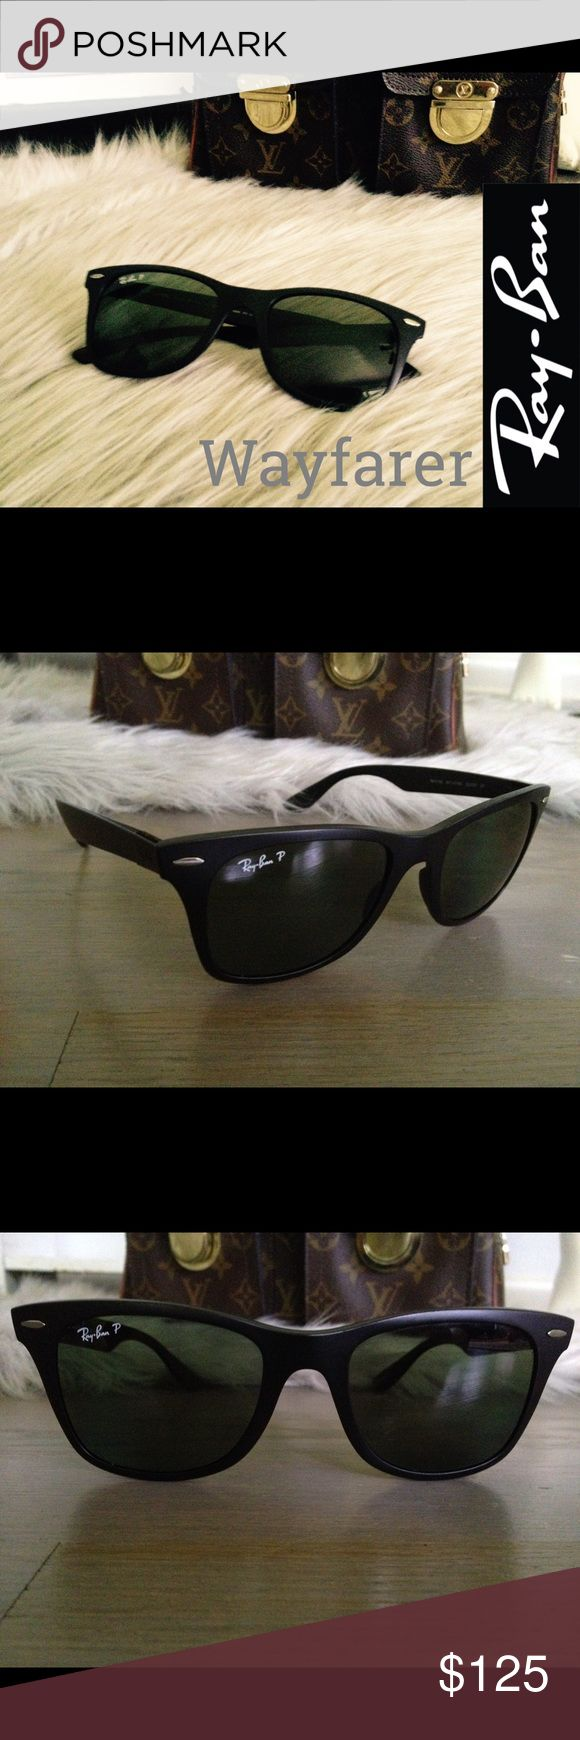 Authentic Ray-ban Wayfarer Sunnies Black Ray-ban Wayfarer sunnies. Black. Excellent used condition. Sunglasses only. Does not include case or cleaning cloth. *NO TRADES* Ray-Ban Accessories Sunglasses